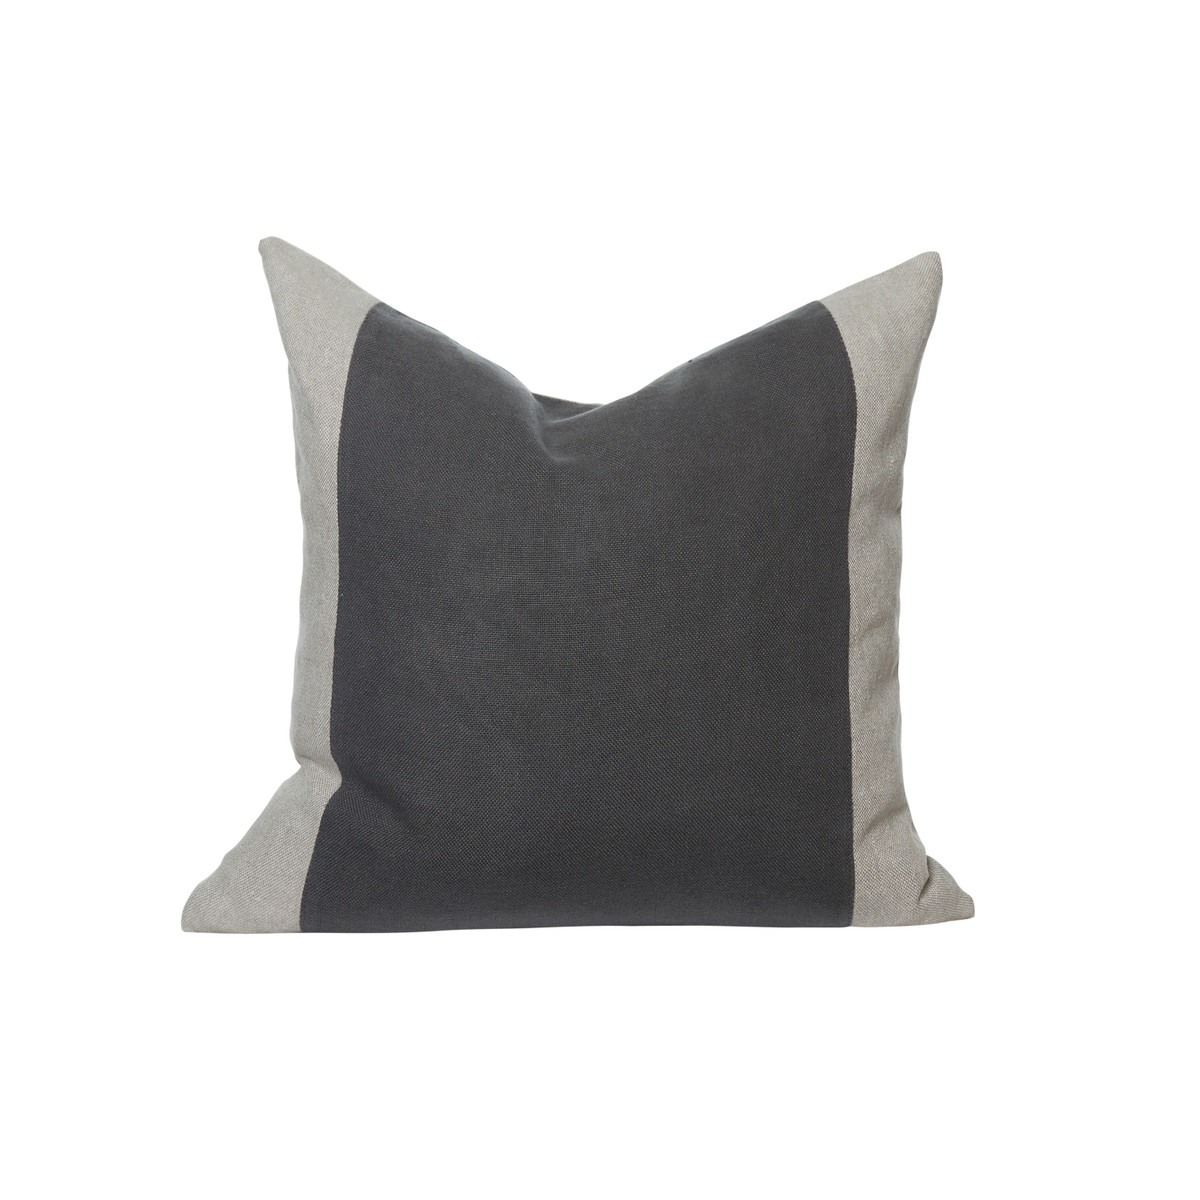 Christina Charcoal Linen Pillow 22 - Front